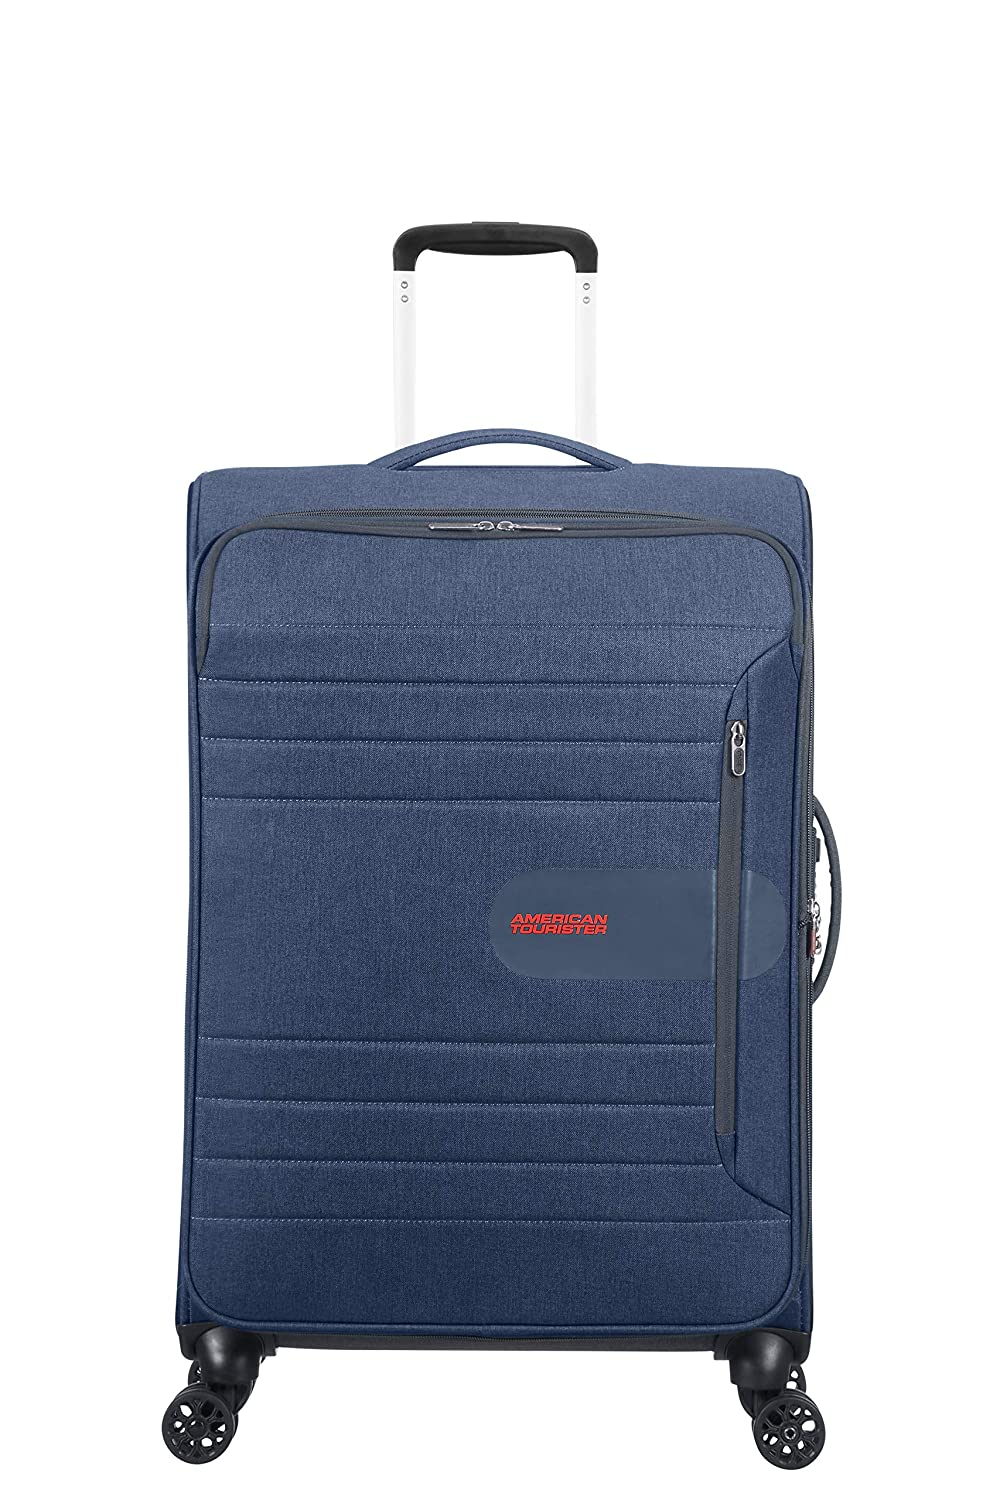 Spinner 55//20 Bagage Cabine 40 liters American Tourister Sonicsurfer Dark Shadow 55 cm Gris